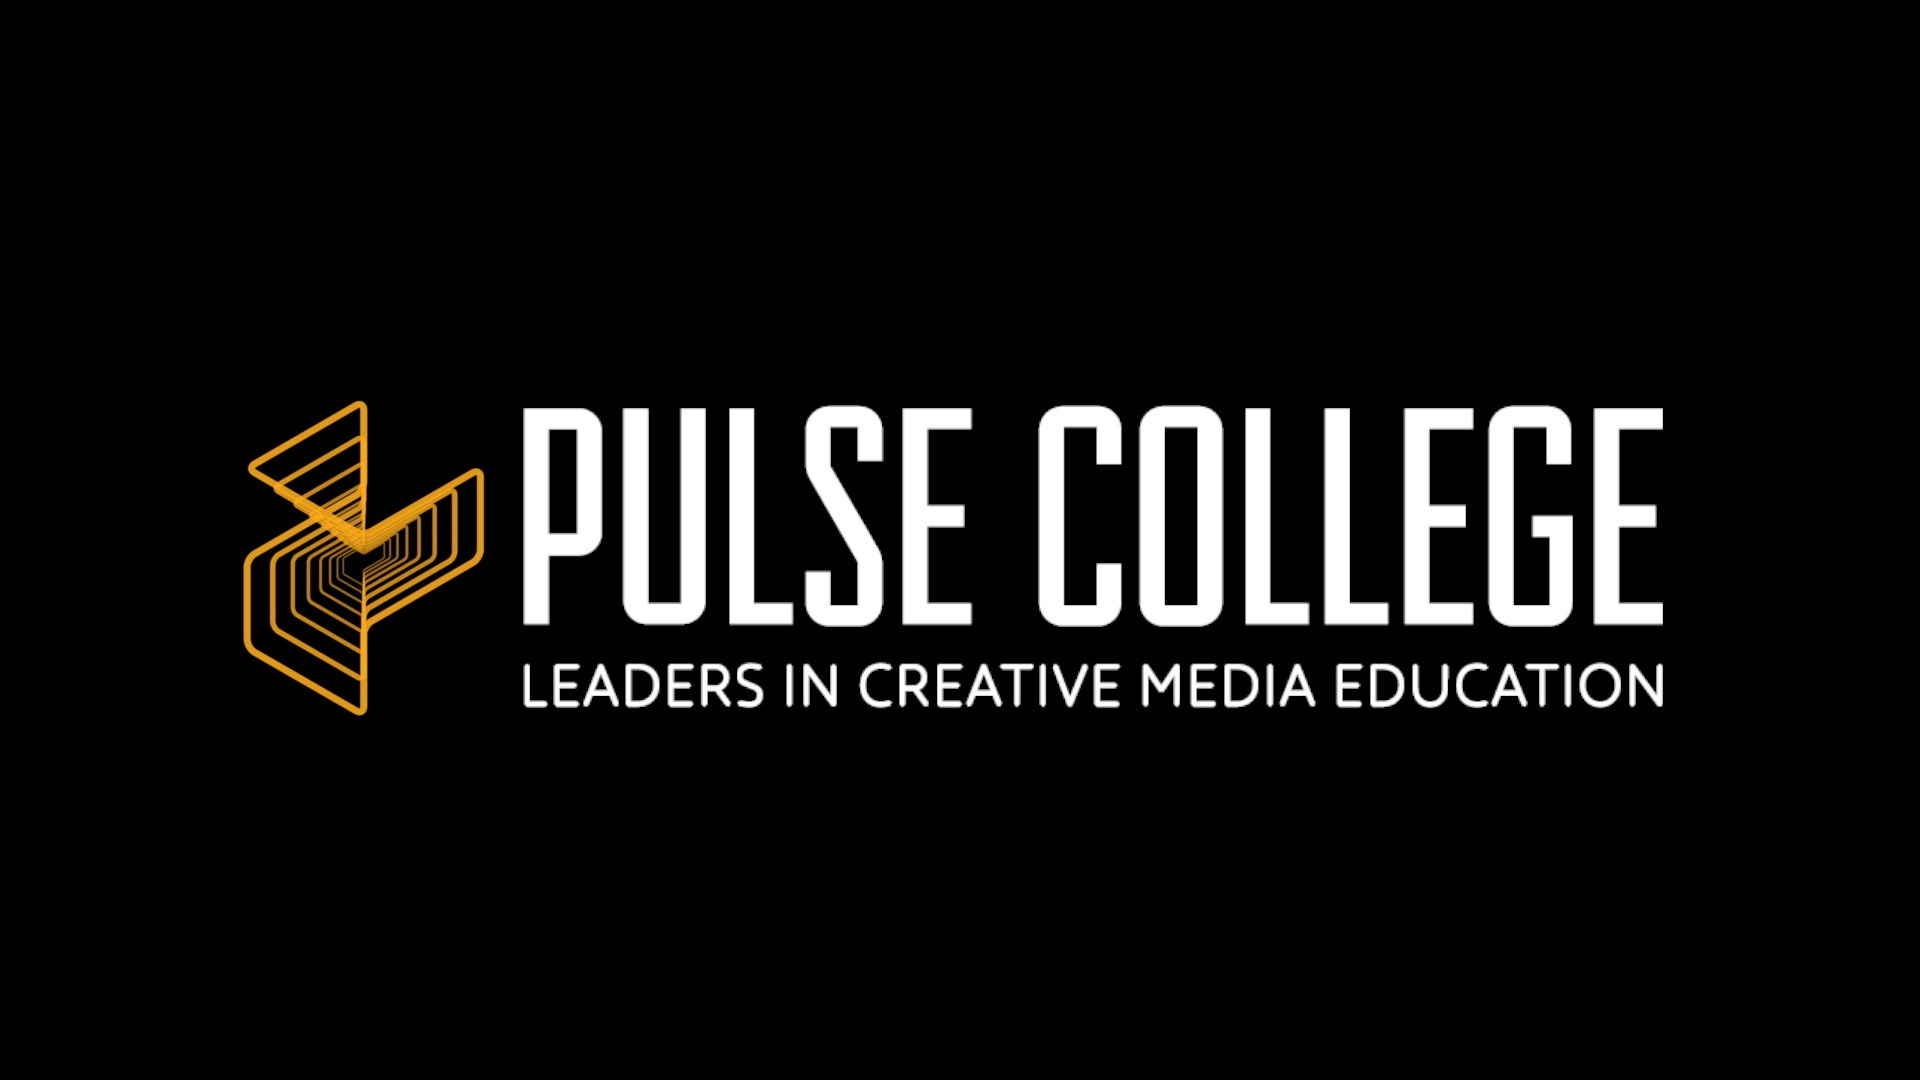 Leaders in Creative Media Education, Pulse College, join Virtual Education Expo